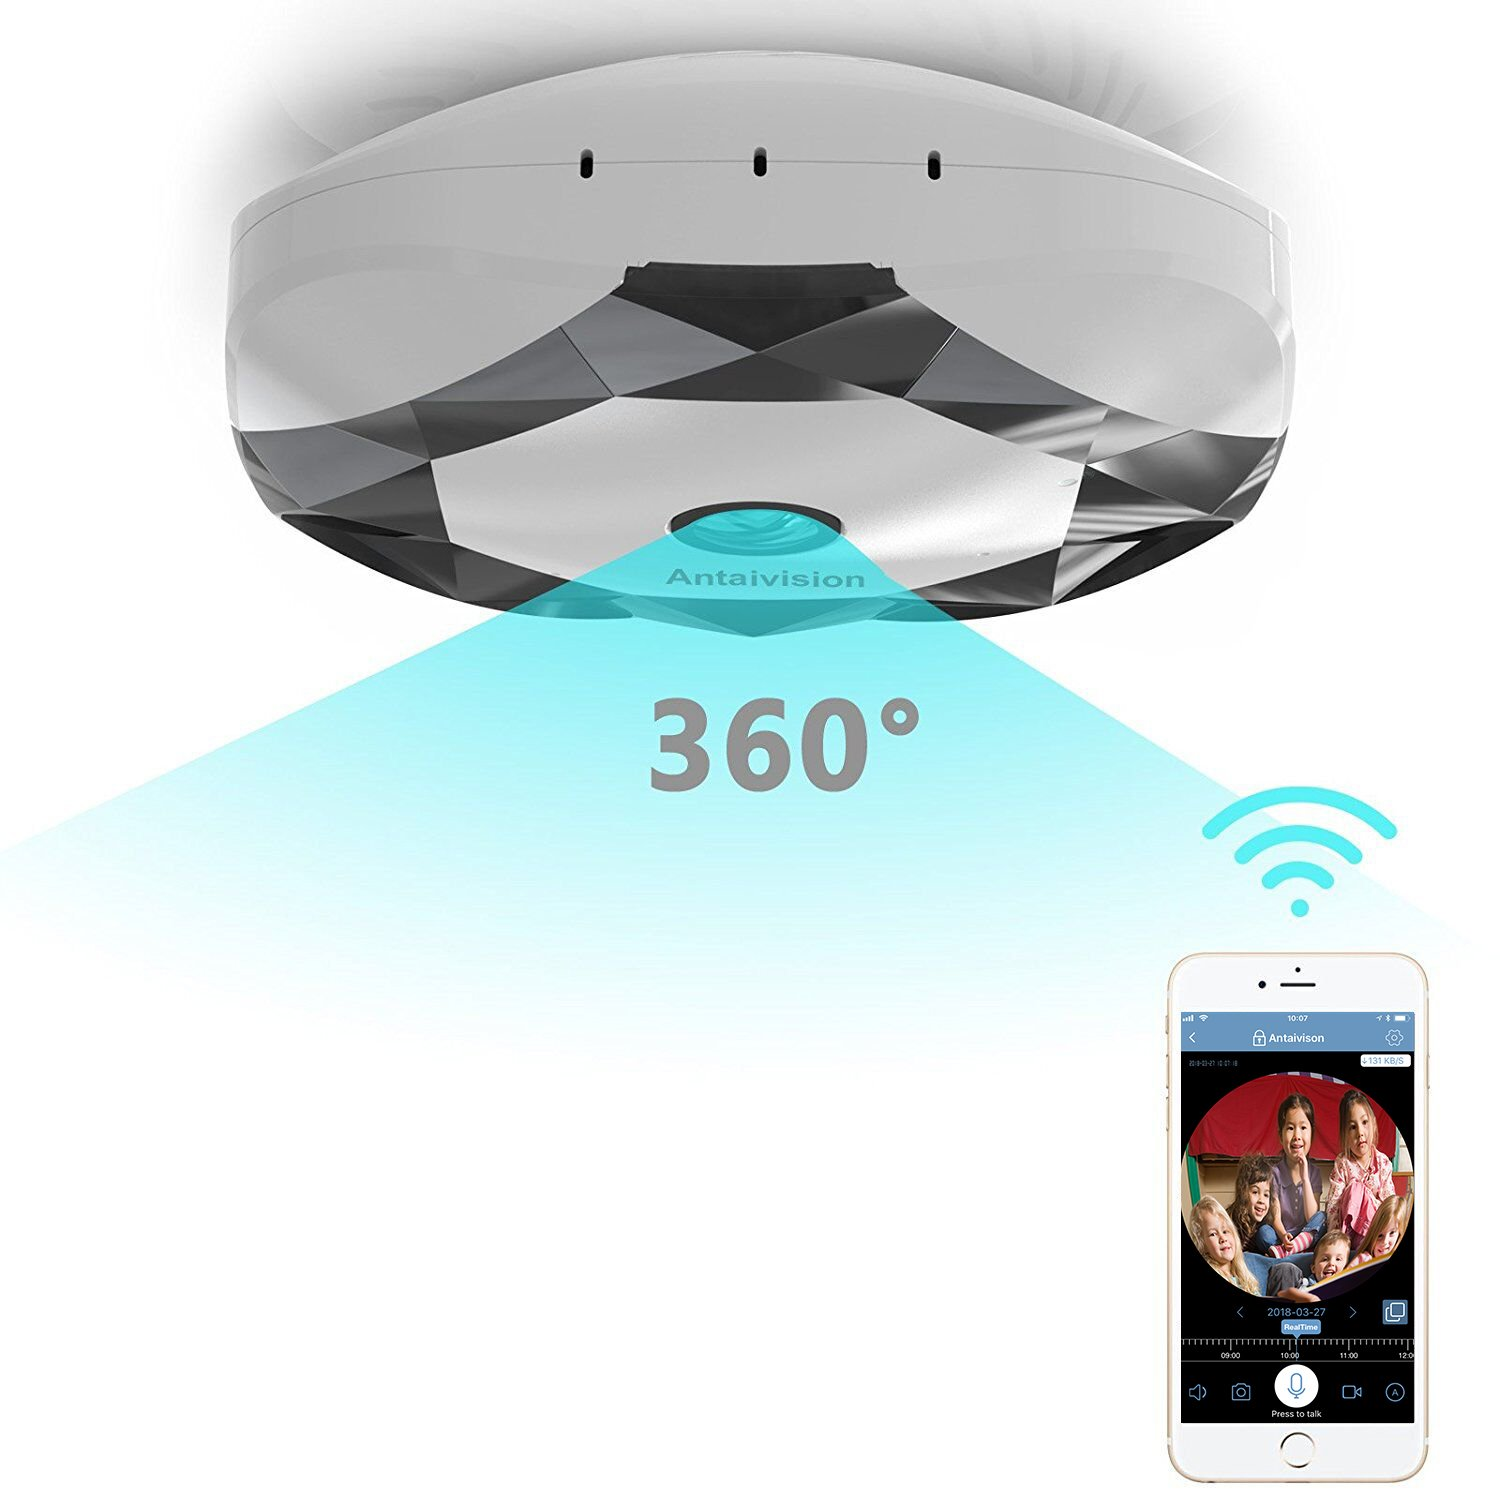 Antaivision 960P WiFi IP Security Home Network Dome Camera for Home Surveillance, Fisheye 360° Indoor Dome with Night Vision Motion Detection 2-Way Talking,Watching The Whole Room Without Blind Area.